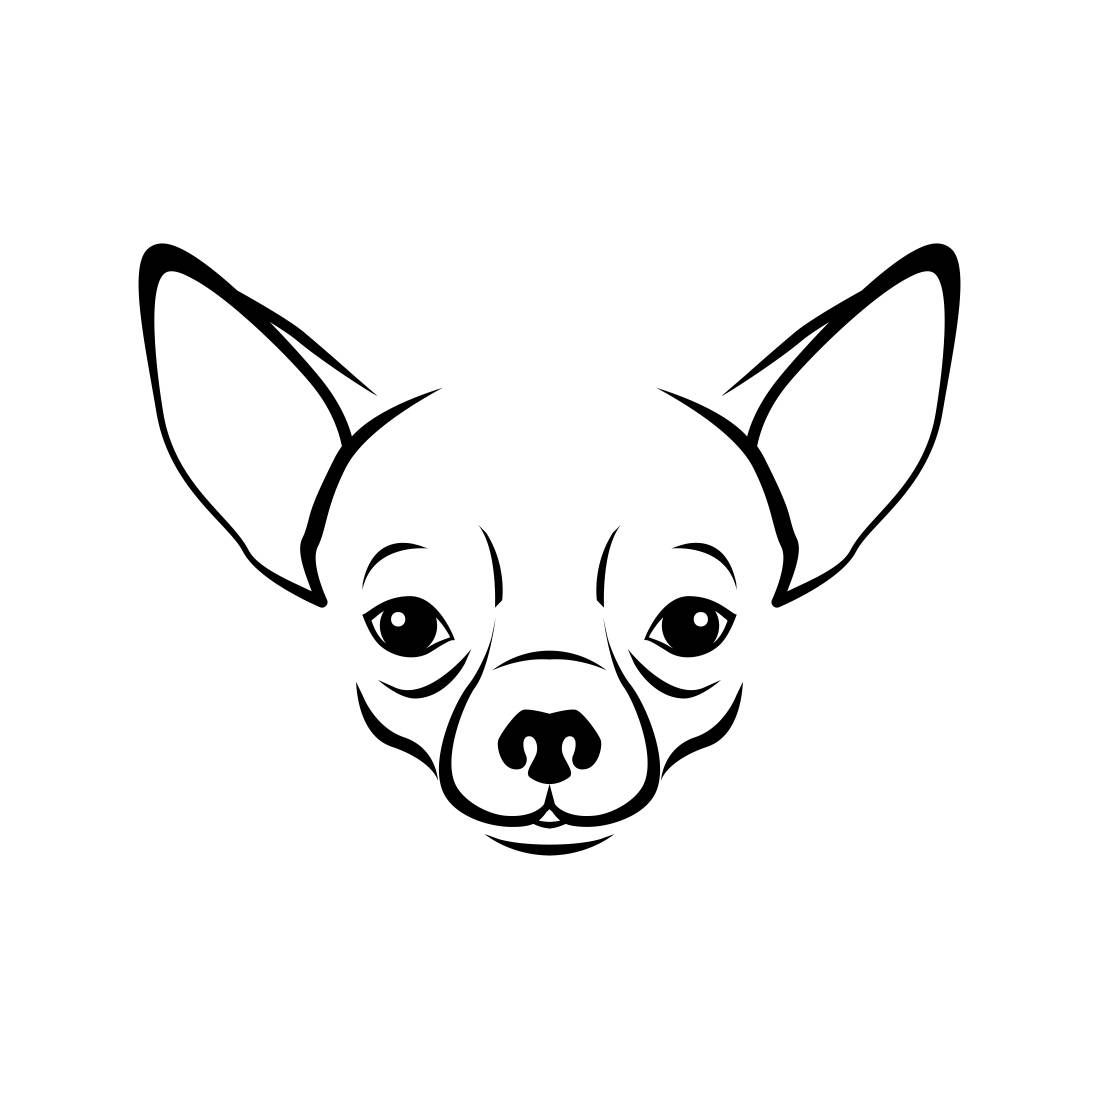 Angry chihuahua clipart clipart stock Chihuahua Dog Head Graphics SVG Dxf EPS Png Cdr Ai Pdf Vector Art ... clipart stock